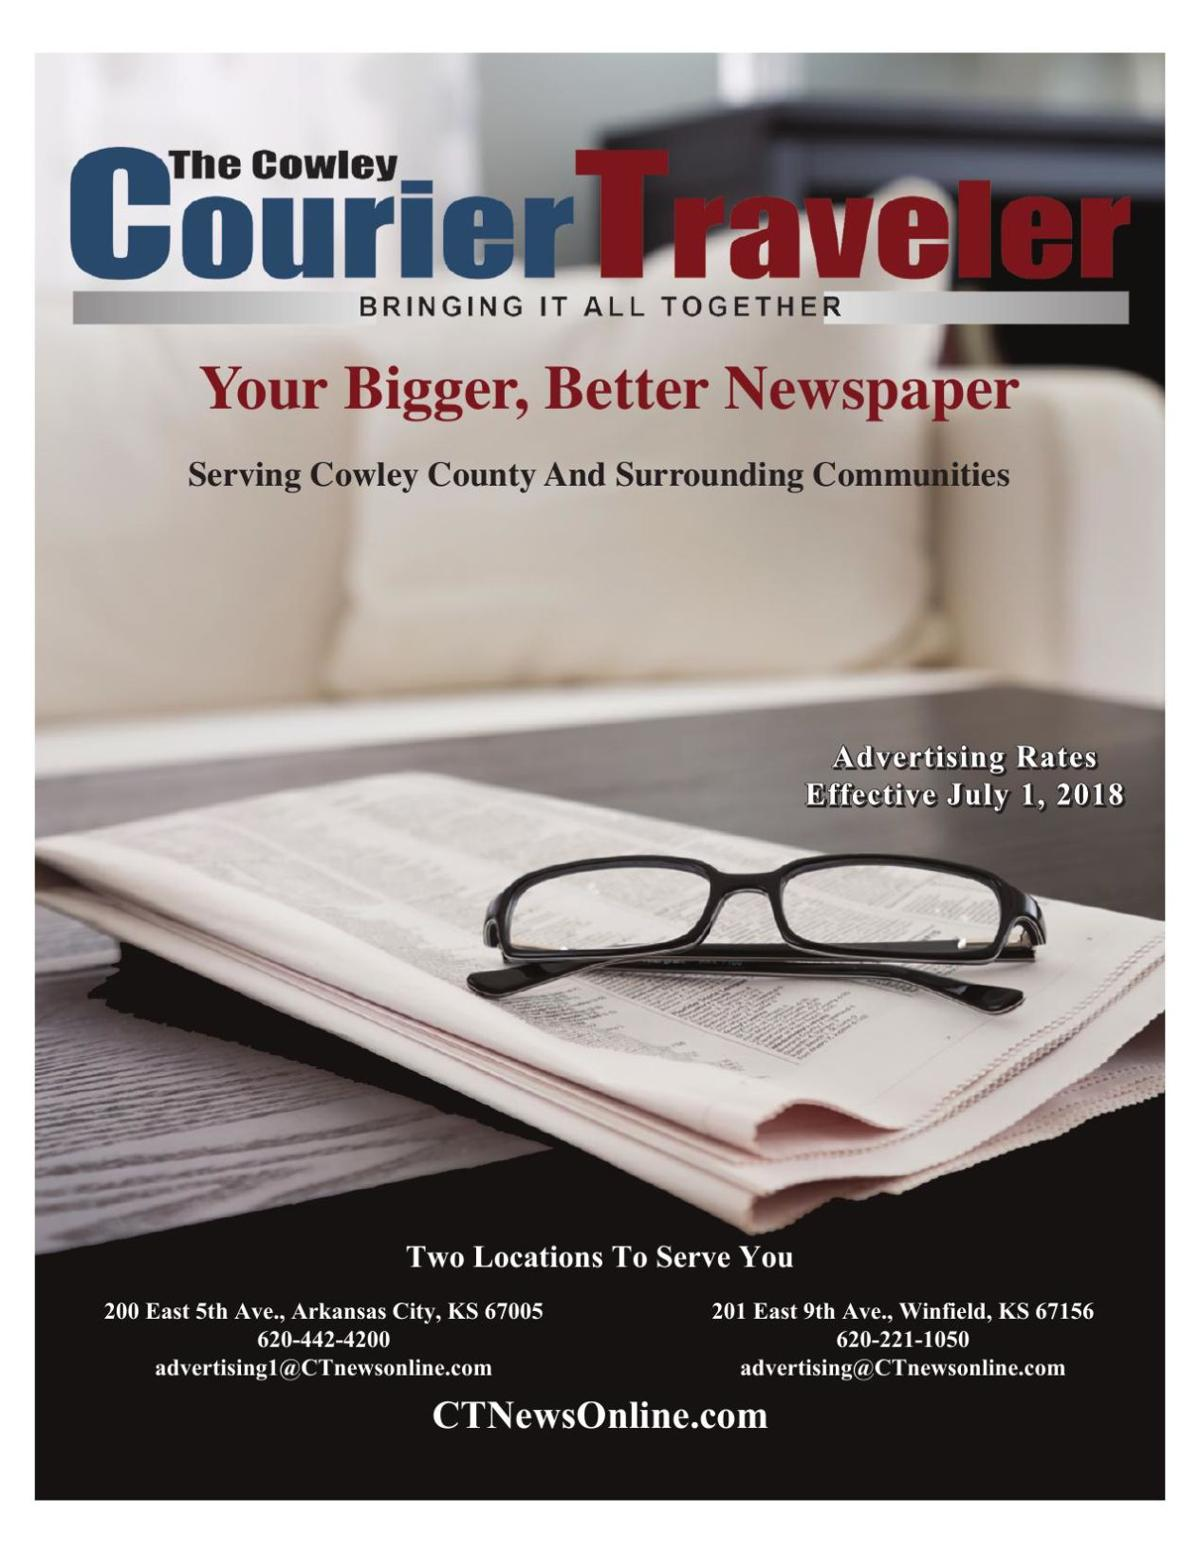 CourierTraveler Rate Card